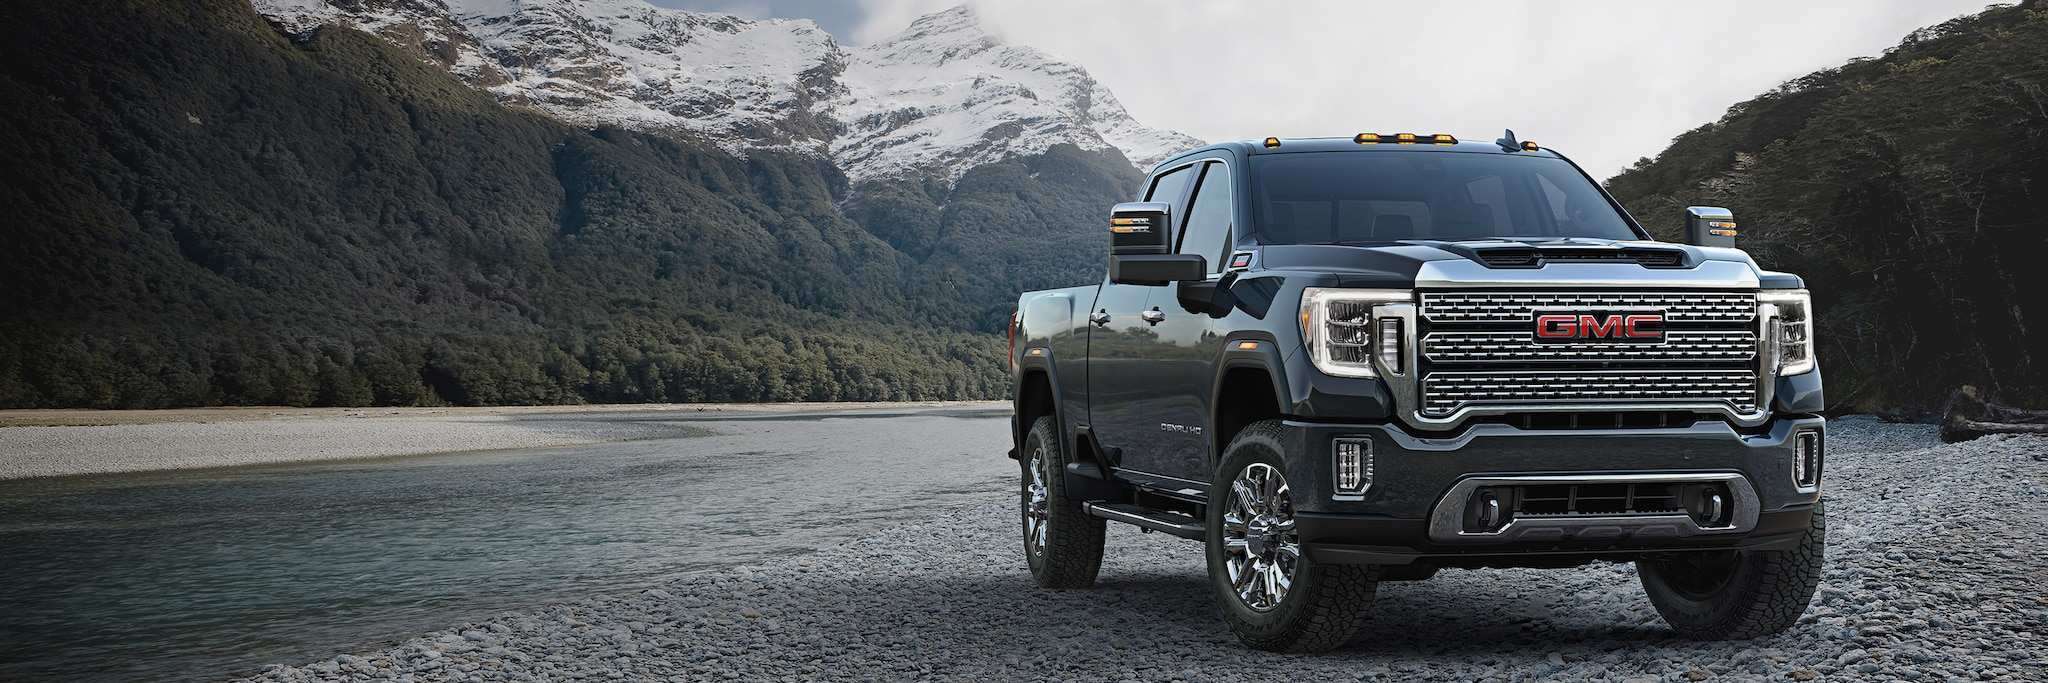 59 The Best 2020 Gmc Hd Reviews